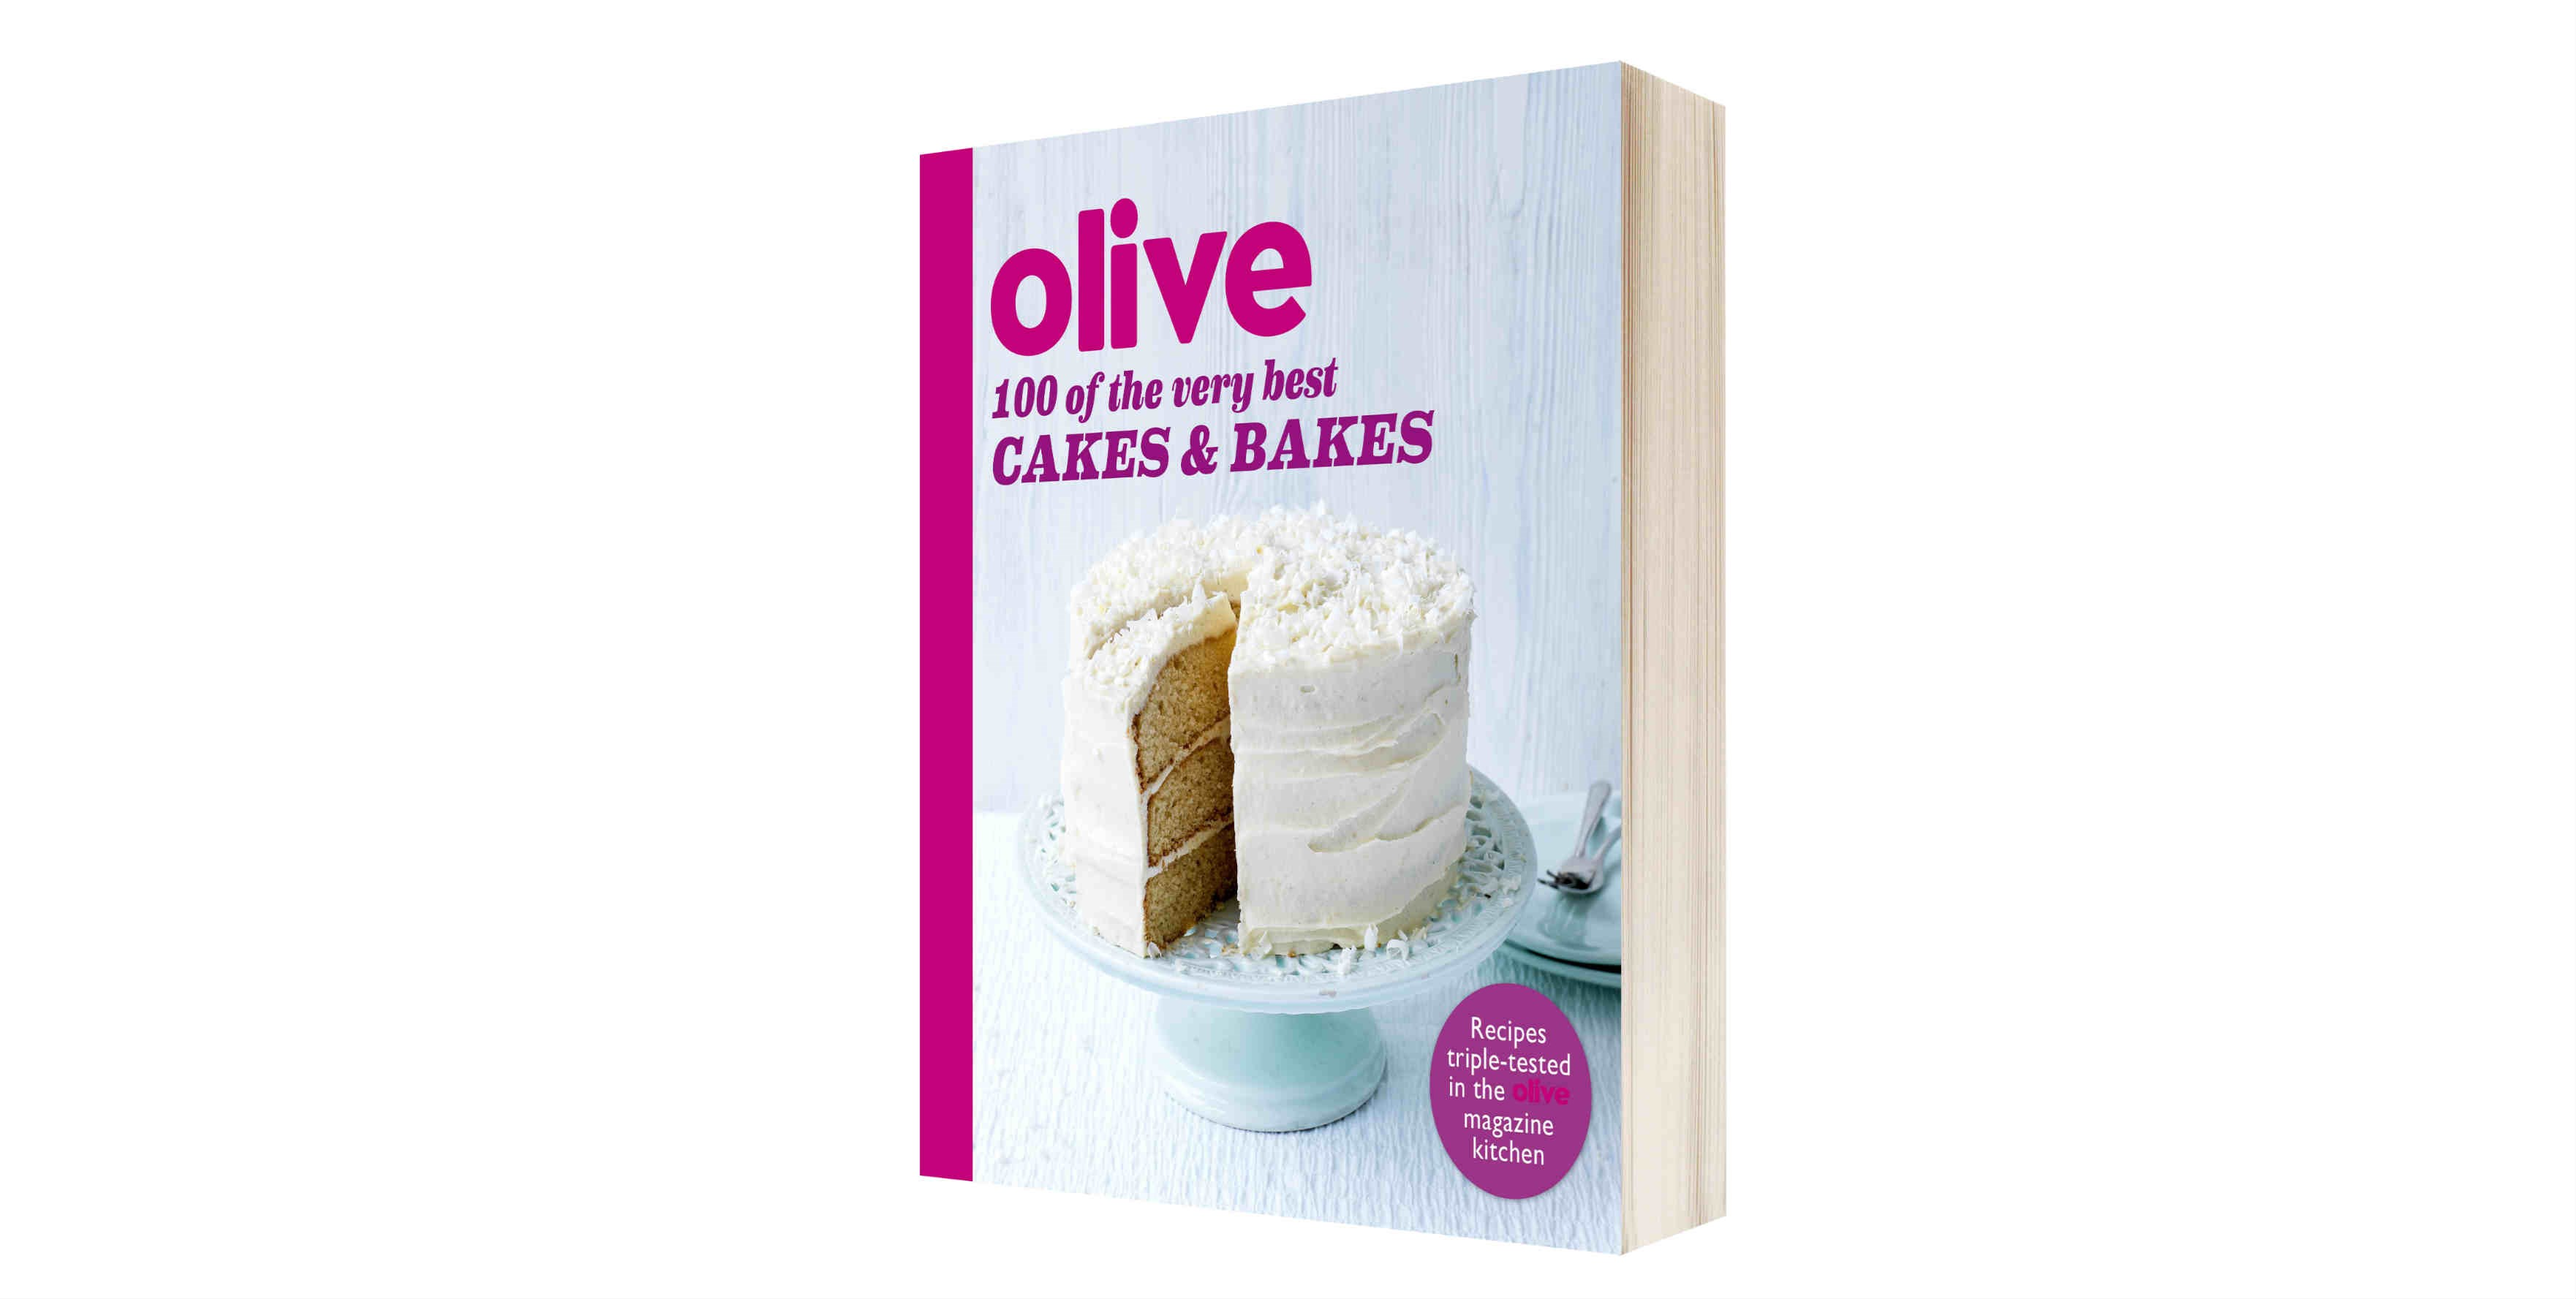 olive magazine cook books